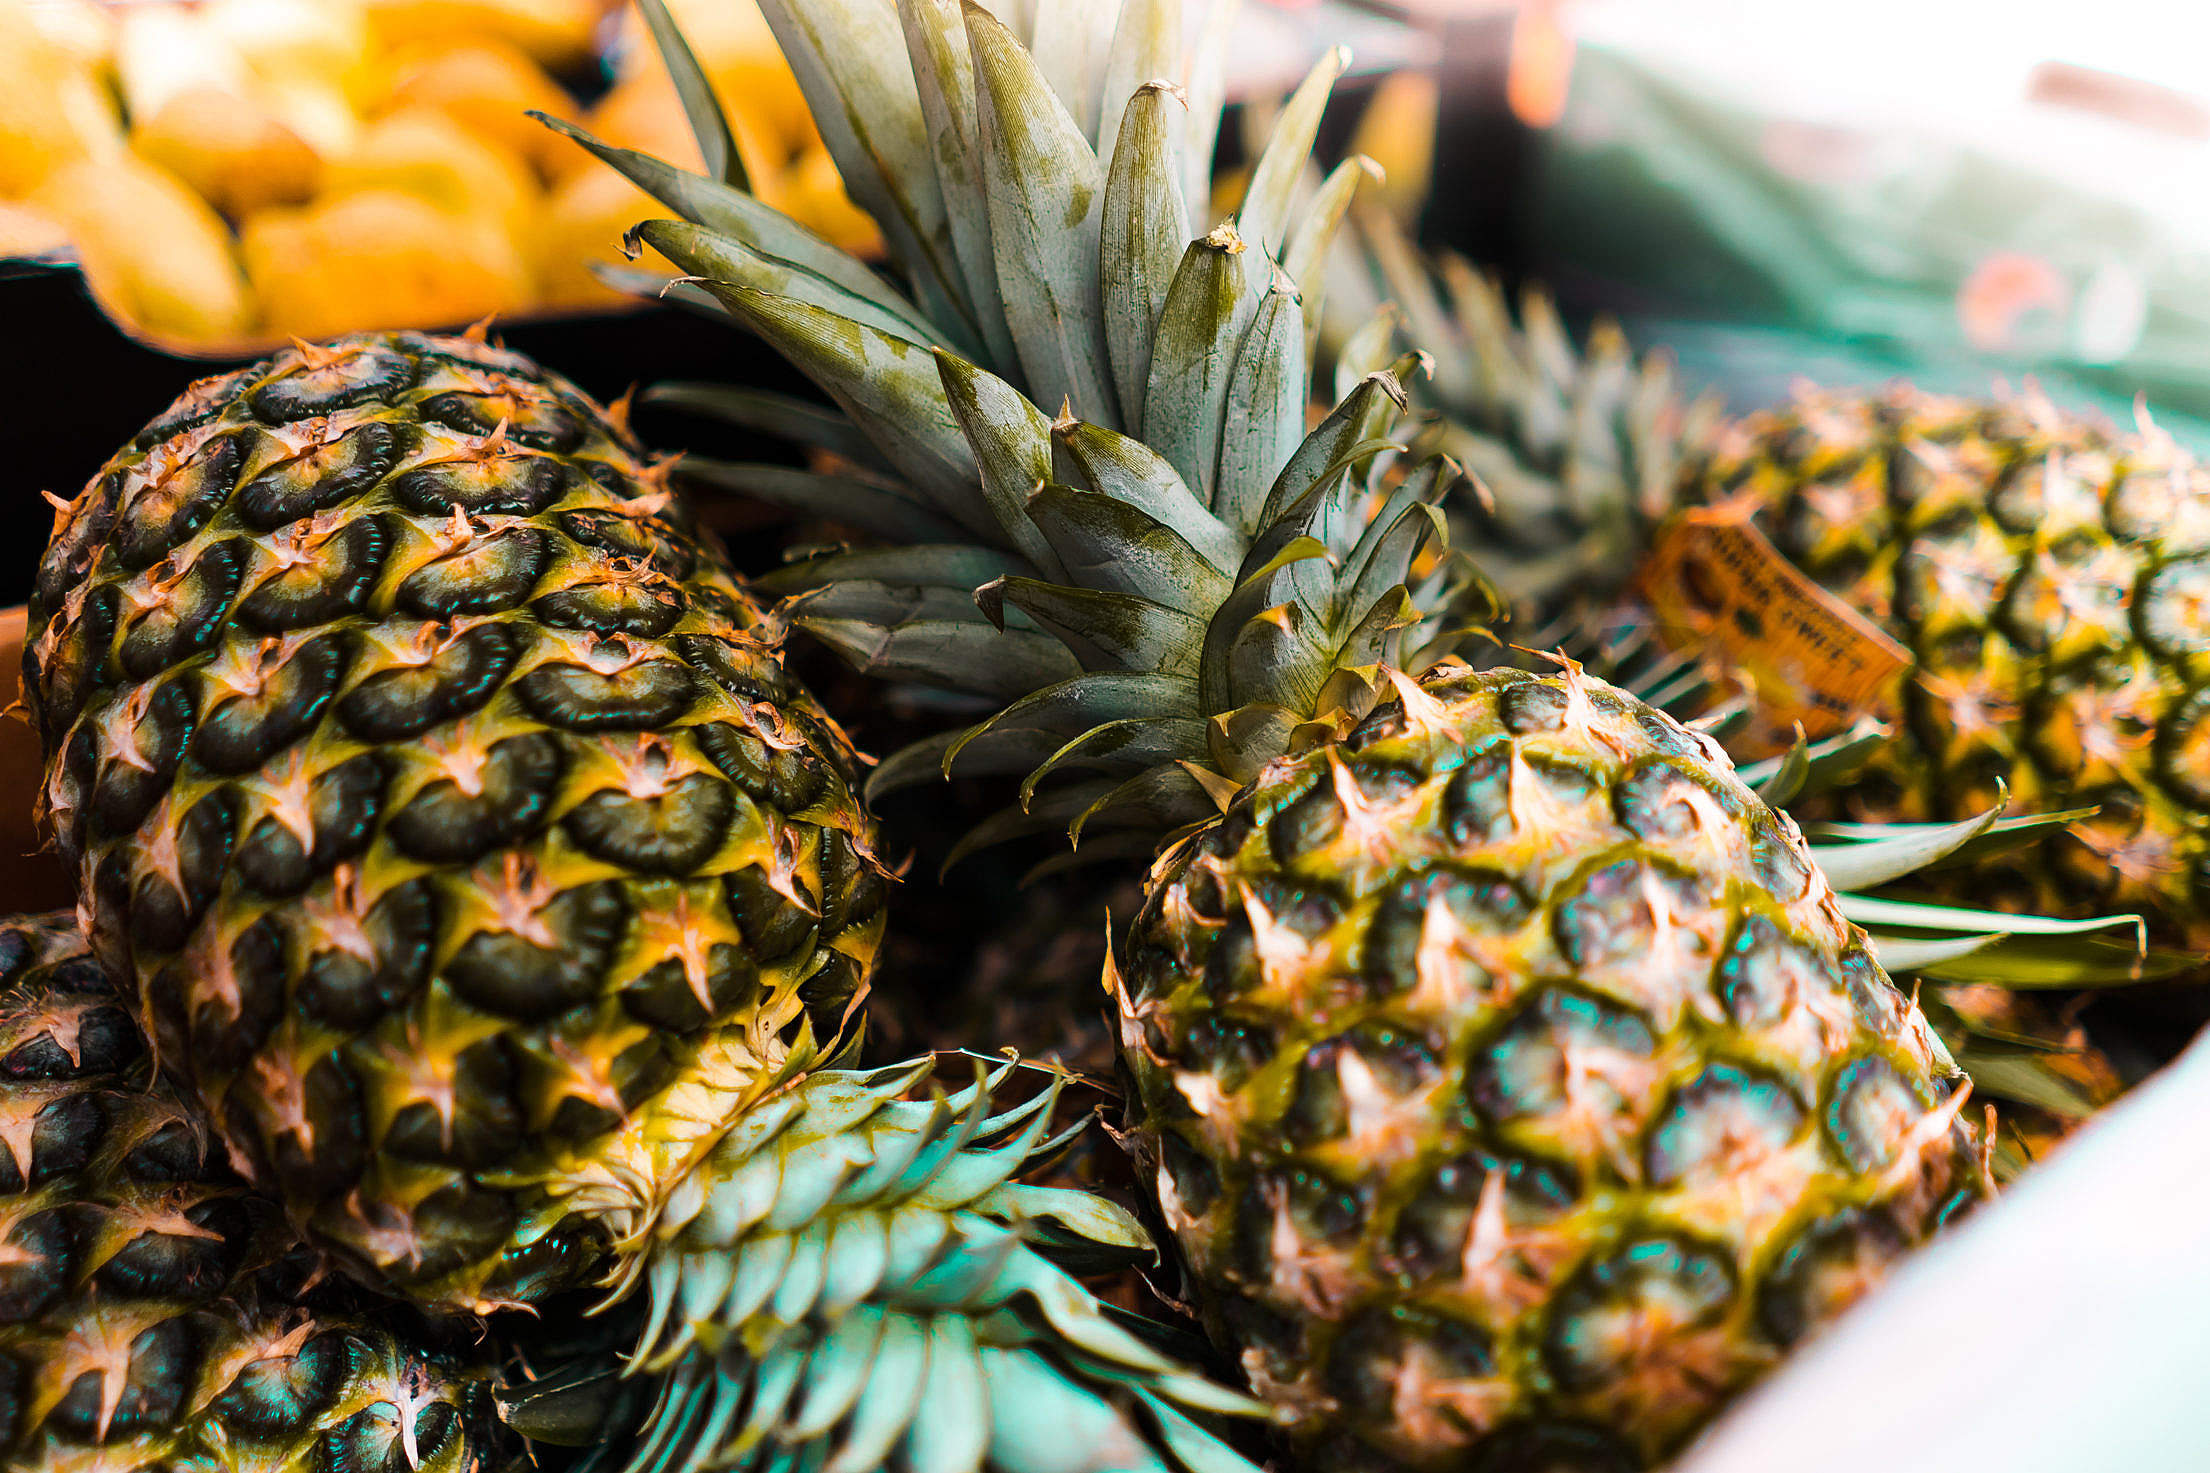 Download Pineapples Free Stock Photo